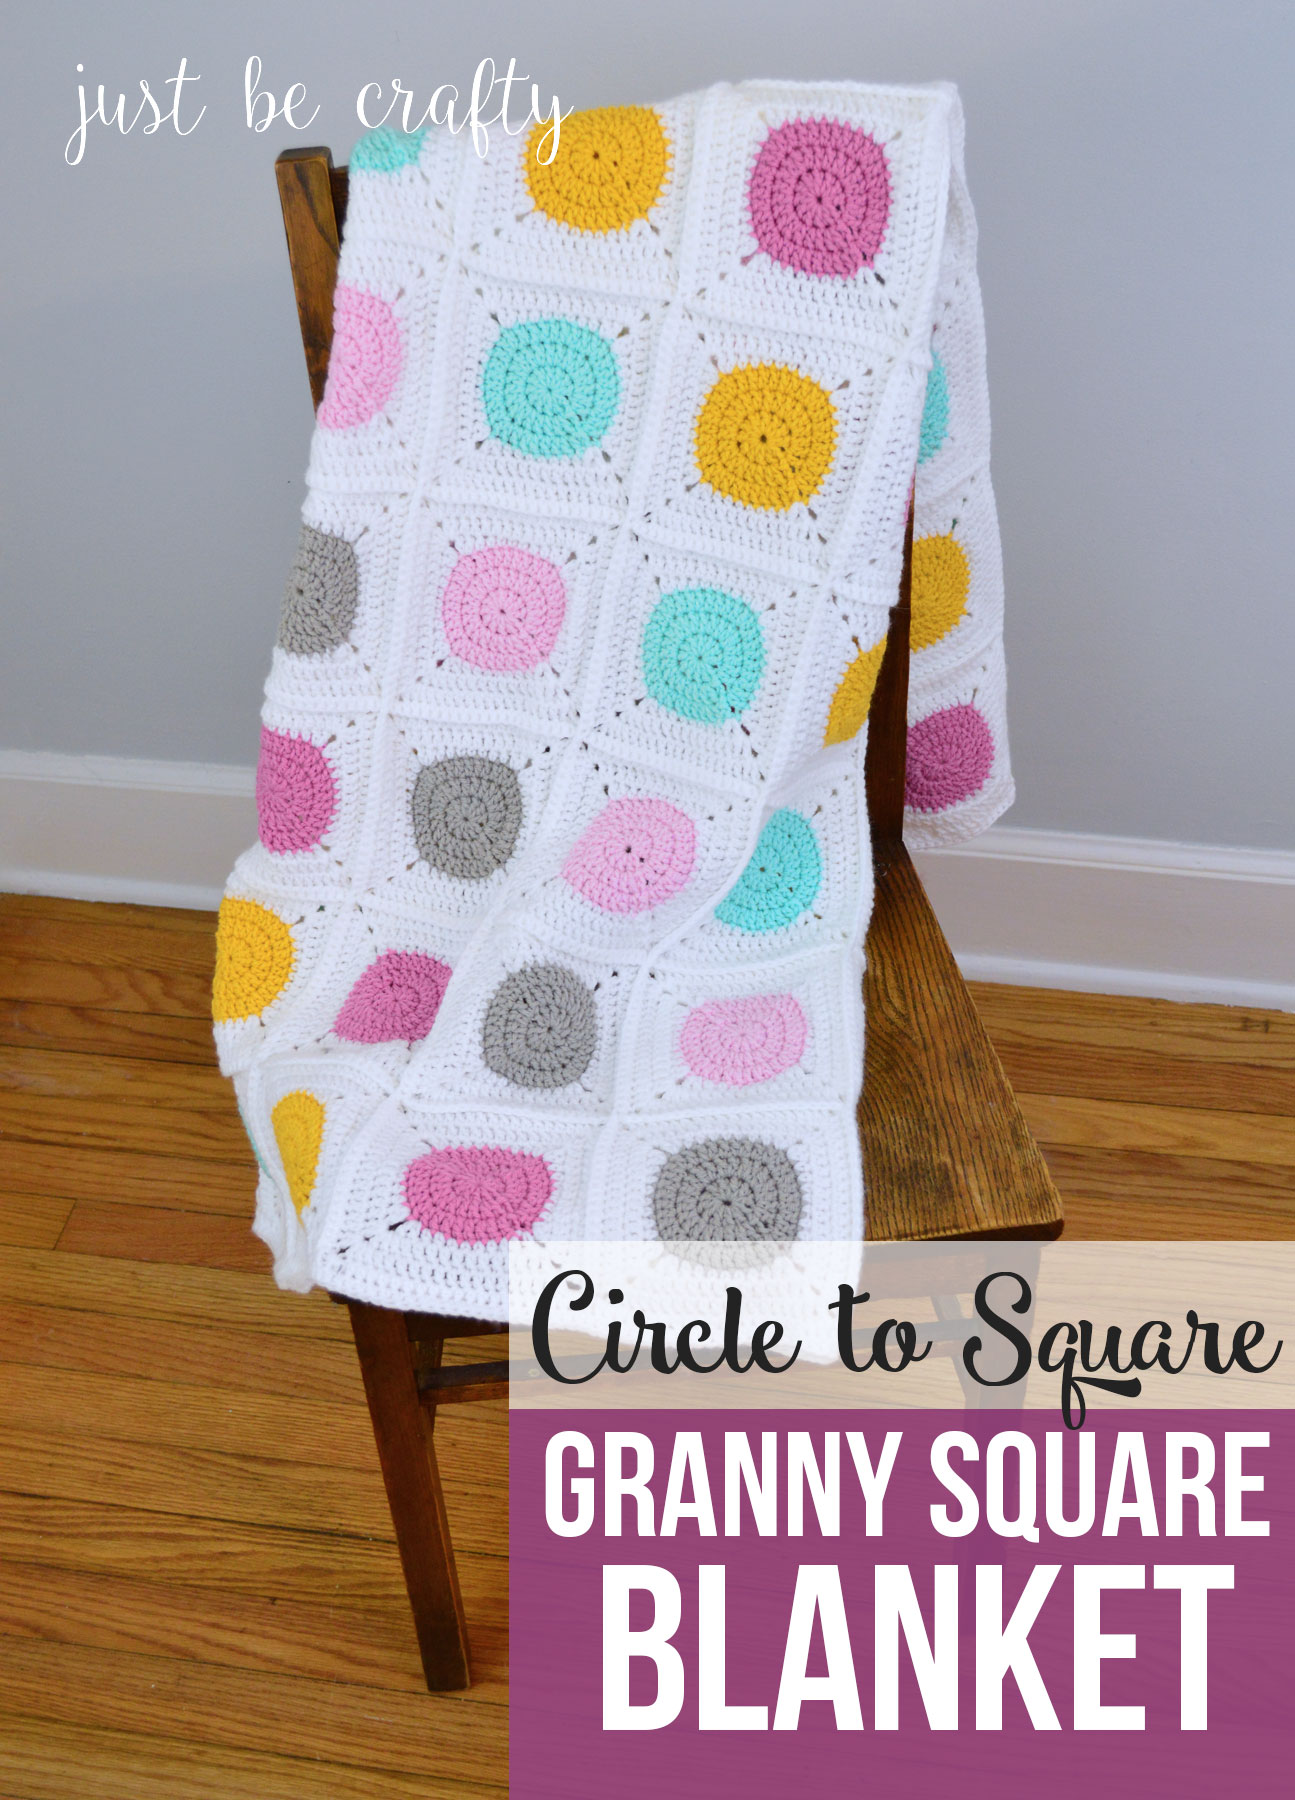 Circle to Square Granny Blanket